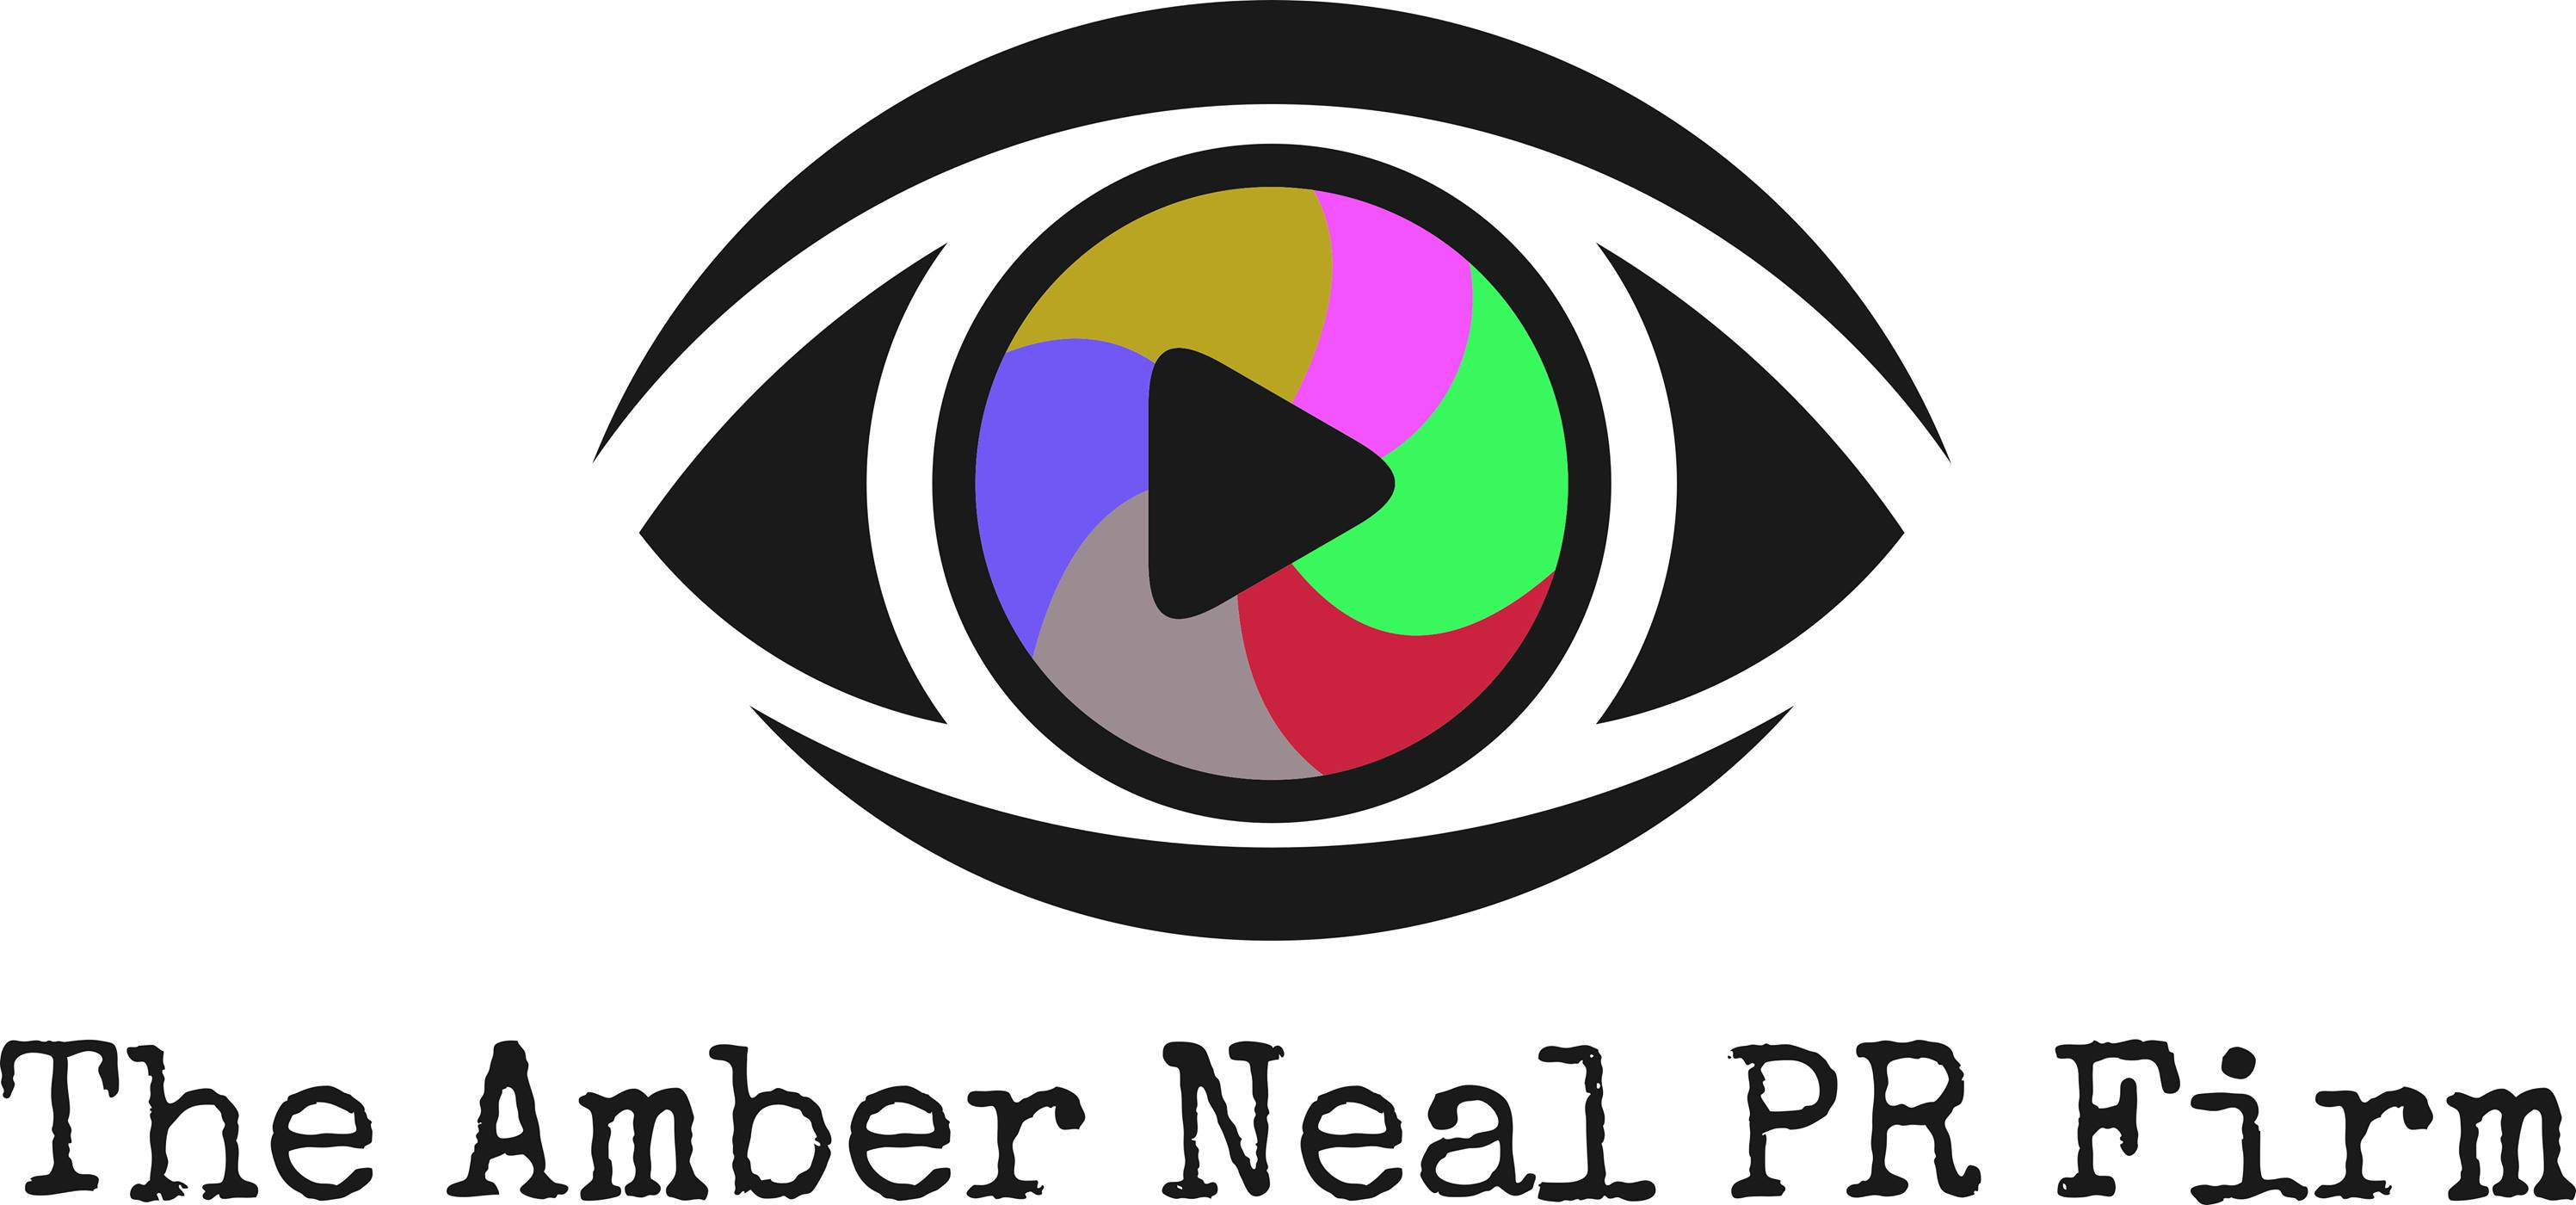 The Amber Neal PR Firm